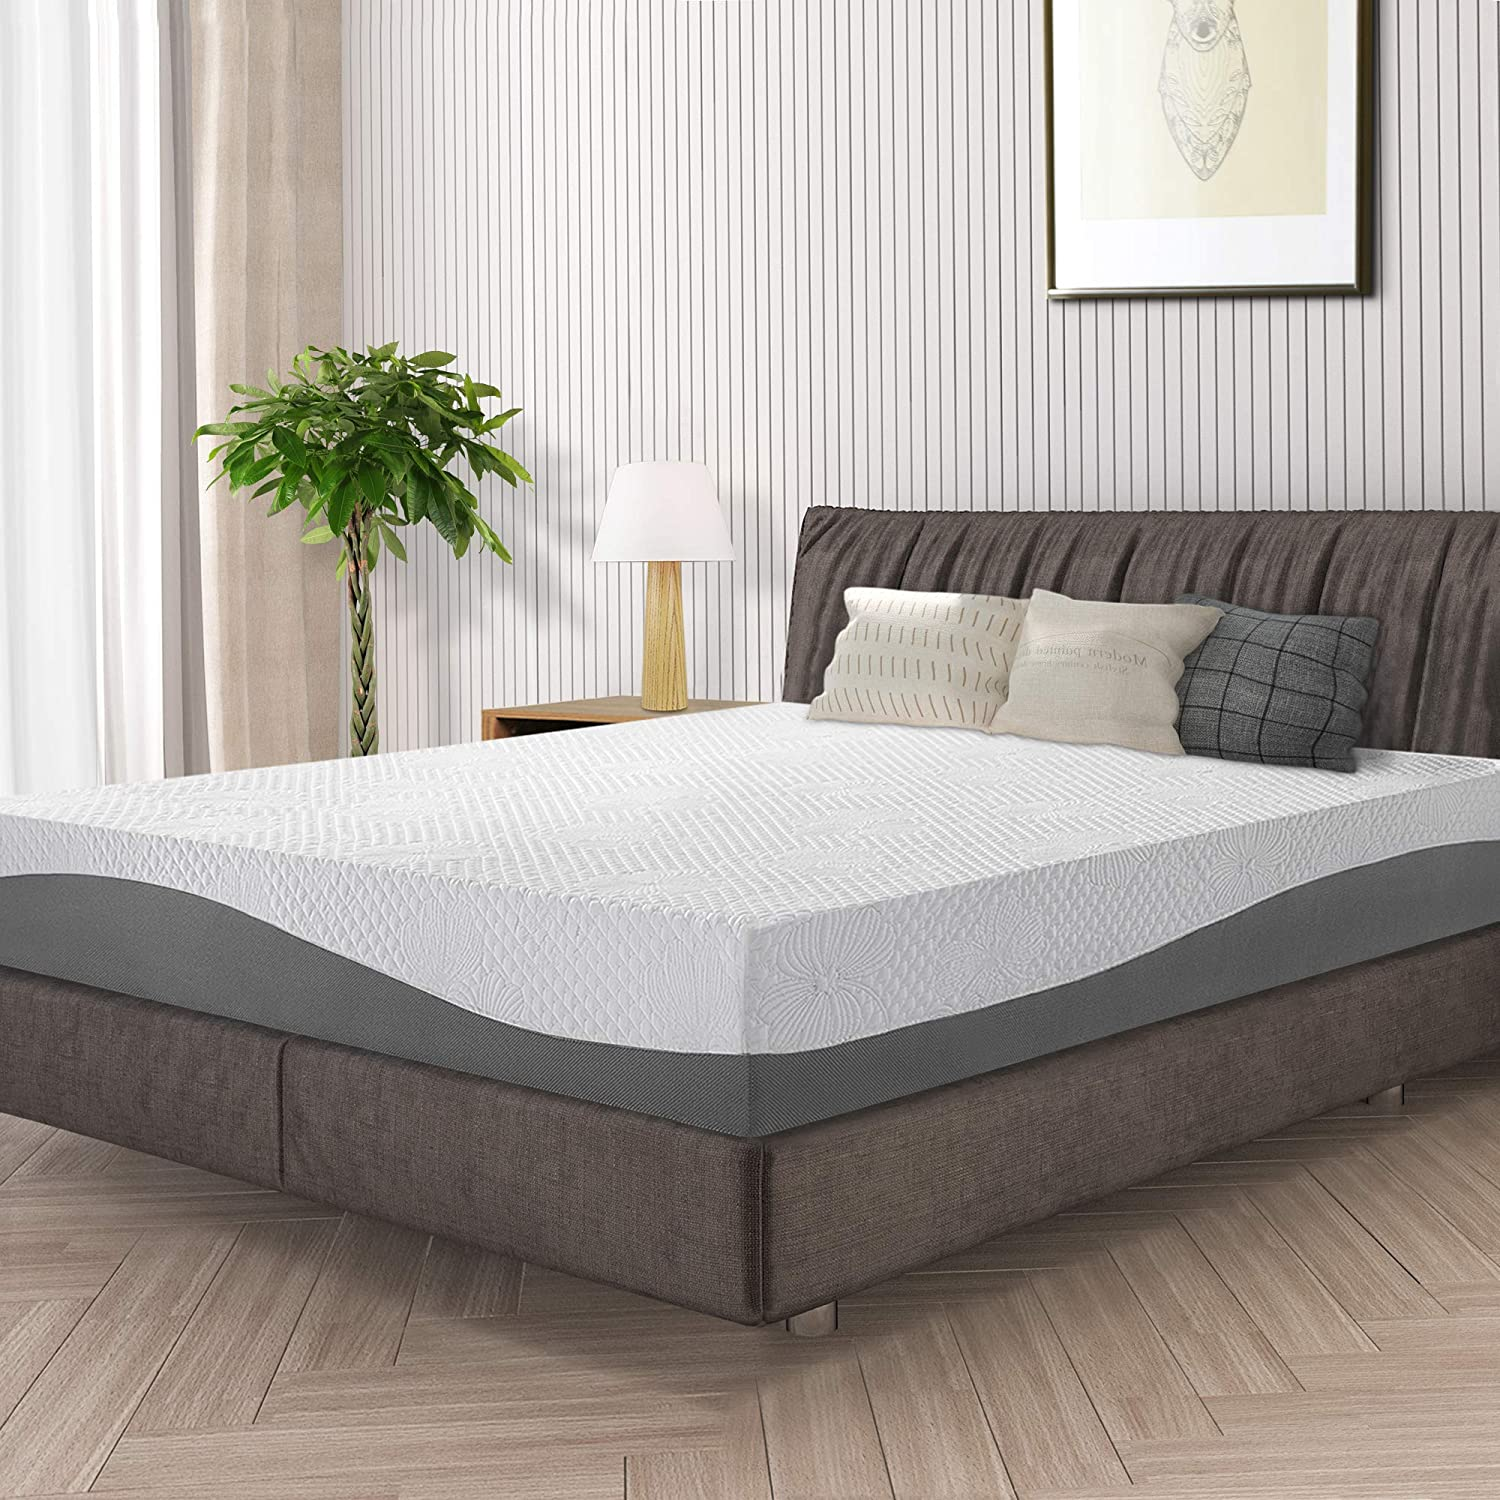 Olee Sleep 10 in Aquarius MemoryFoam Mattress Twin 10FM02T